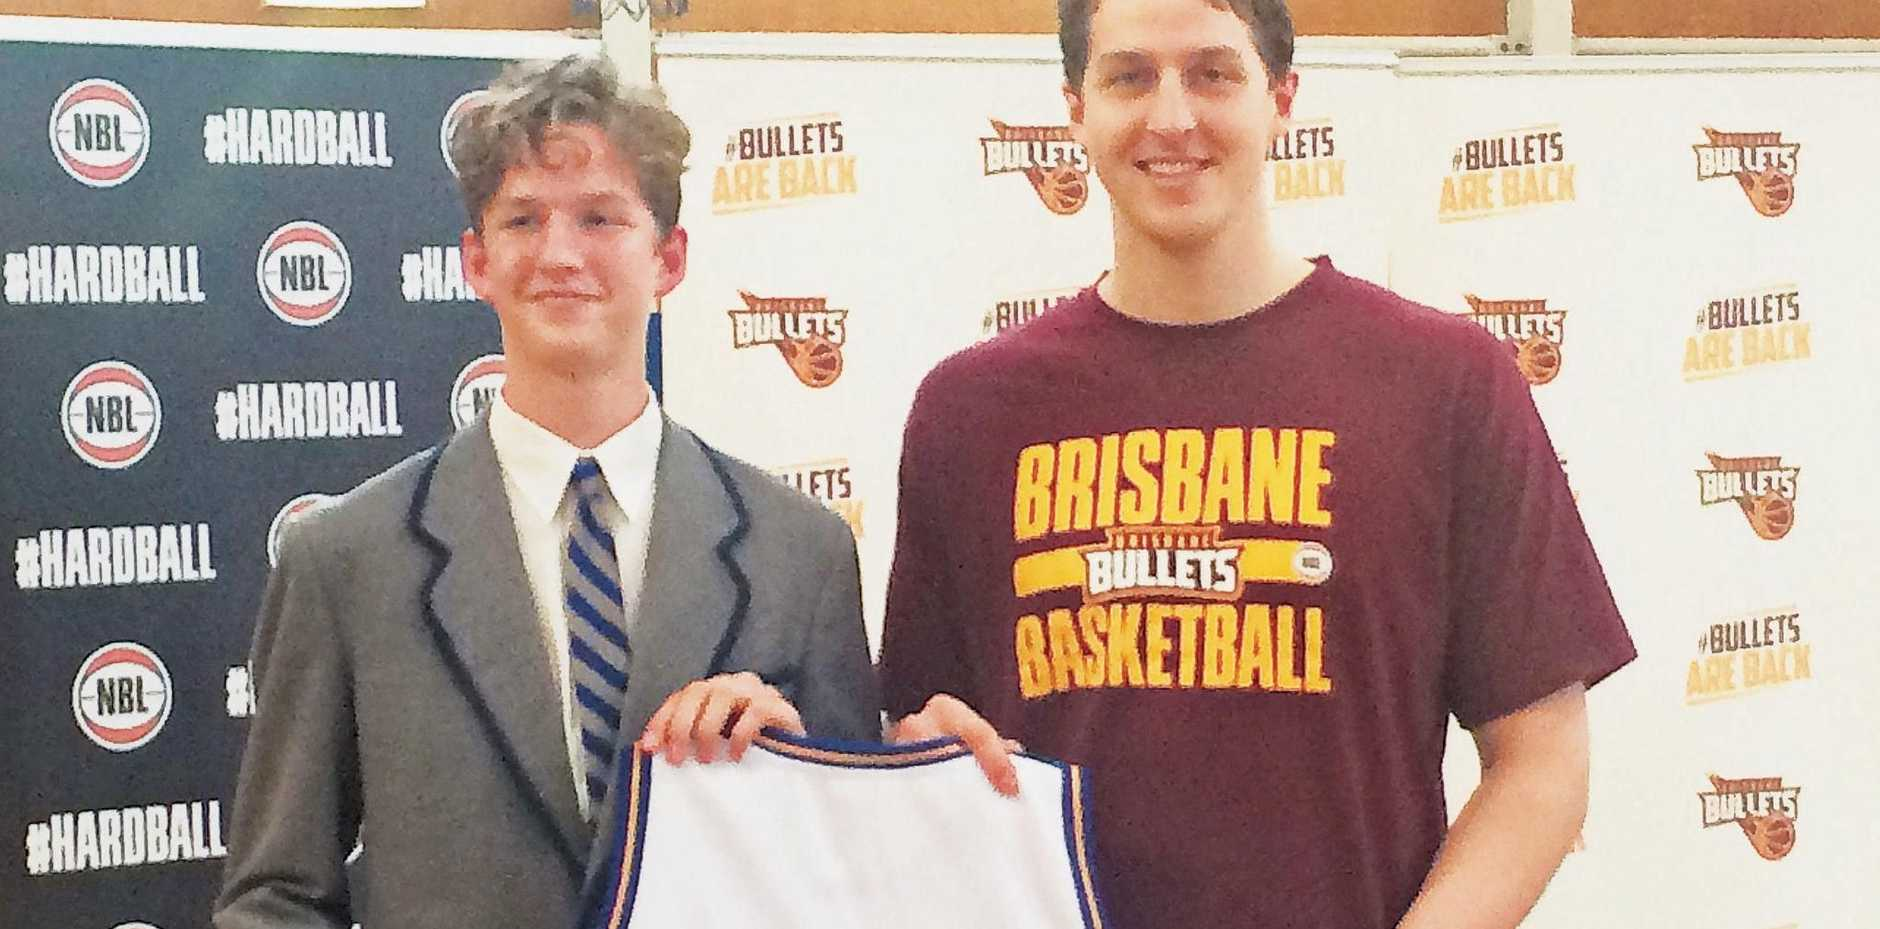 WELCOME HOME: Cameron Bairstow is presented with his Bullets playing singlet by his younger brother, Sean, at his former school, Anglican Church Grammar (Churchie), in Brisbane.